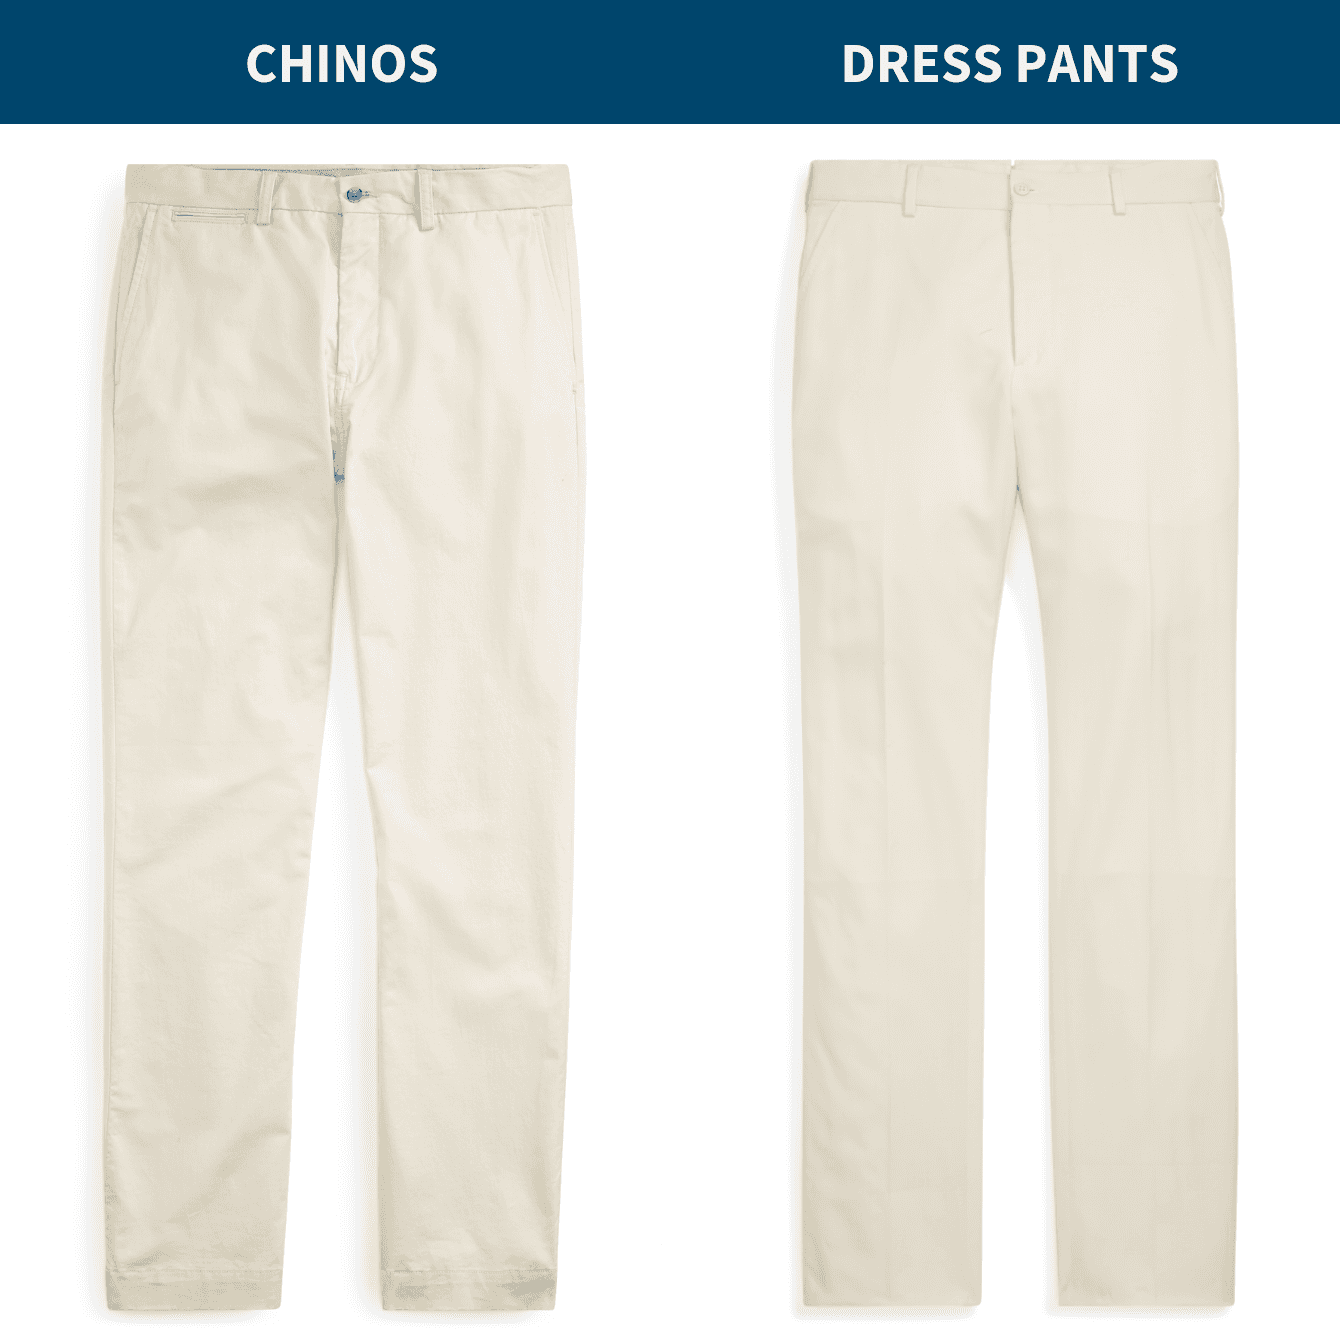 Chinos vs. Dress Pants